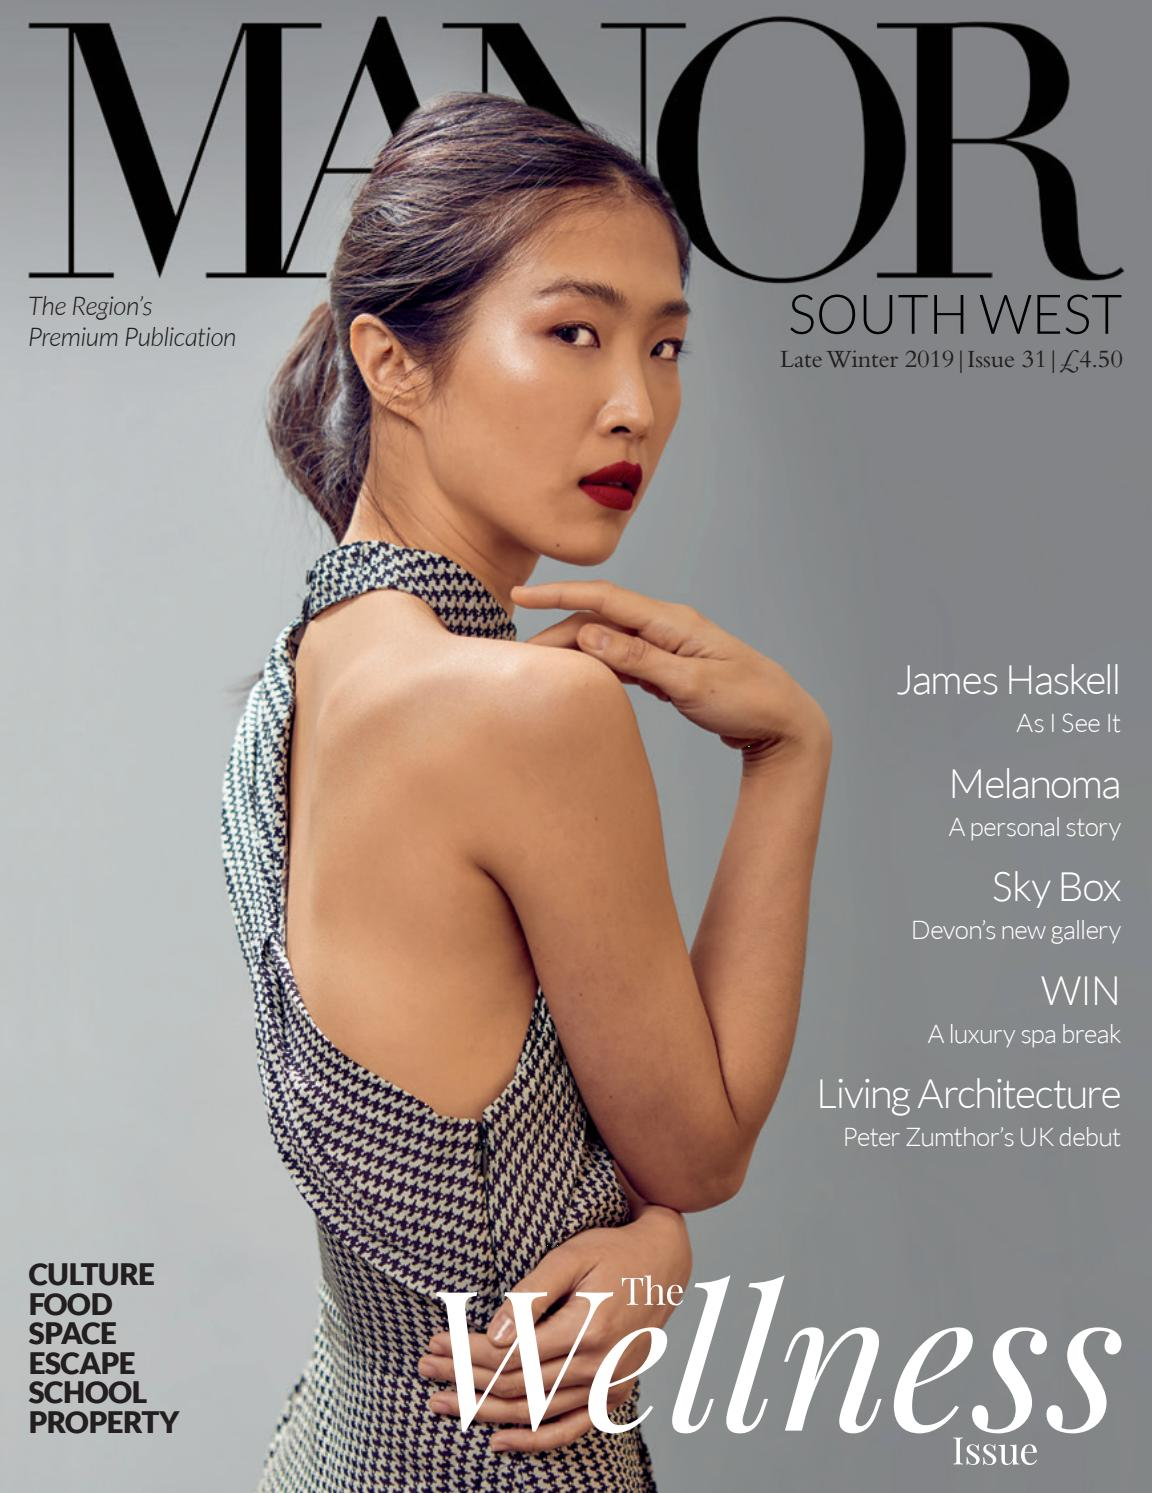 af3e0ea1f4 MANOR Issue 31 - The Wellness Issue by MANOR - issuu